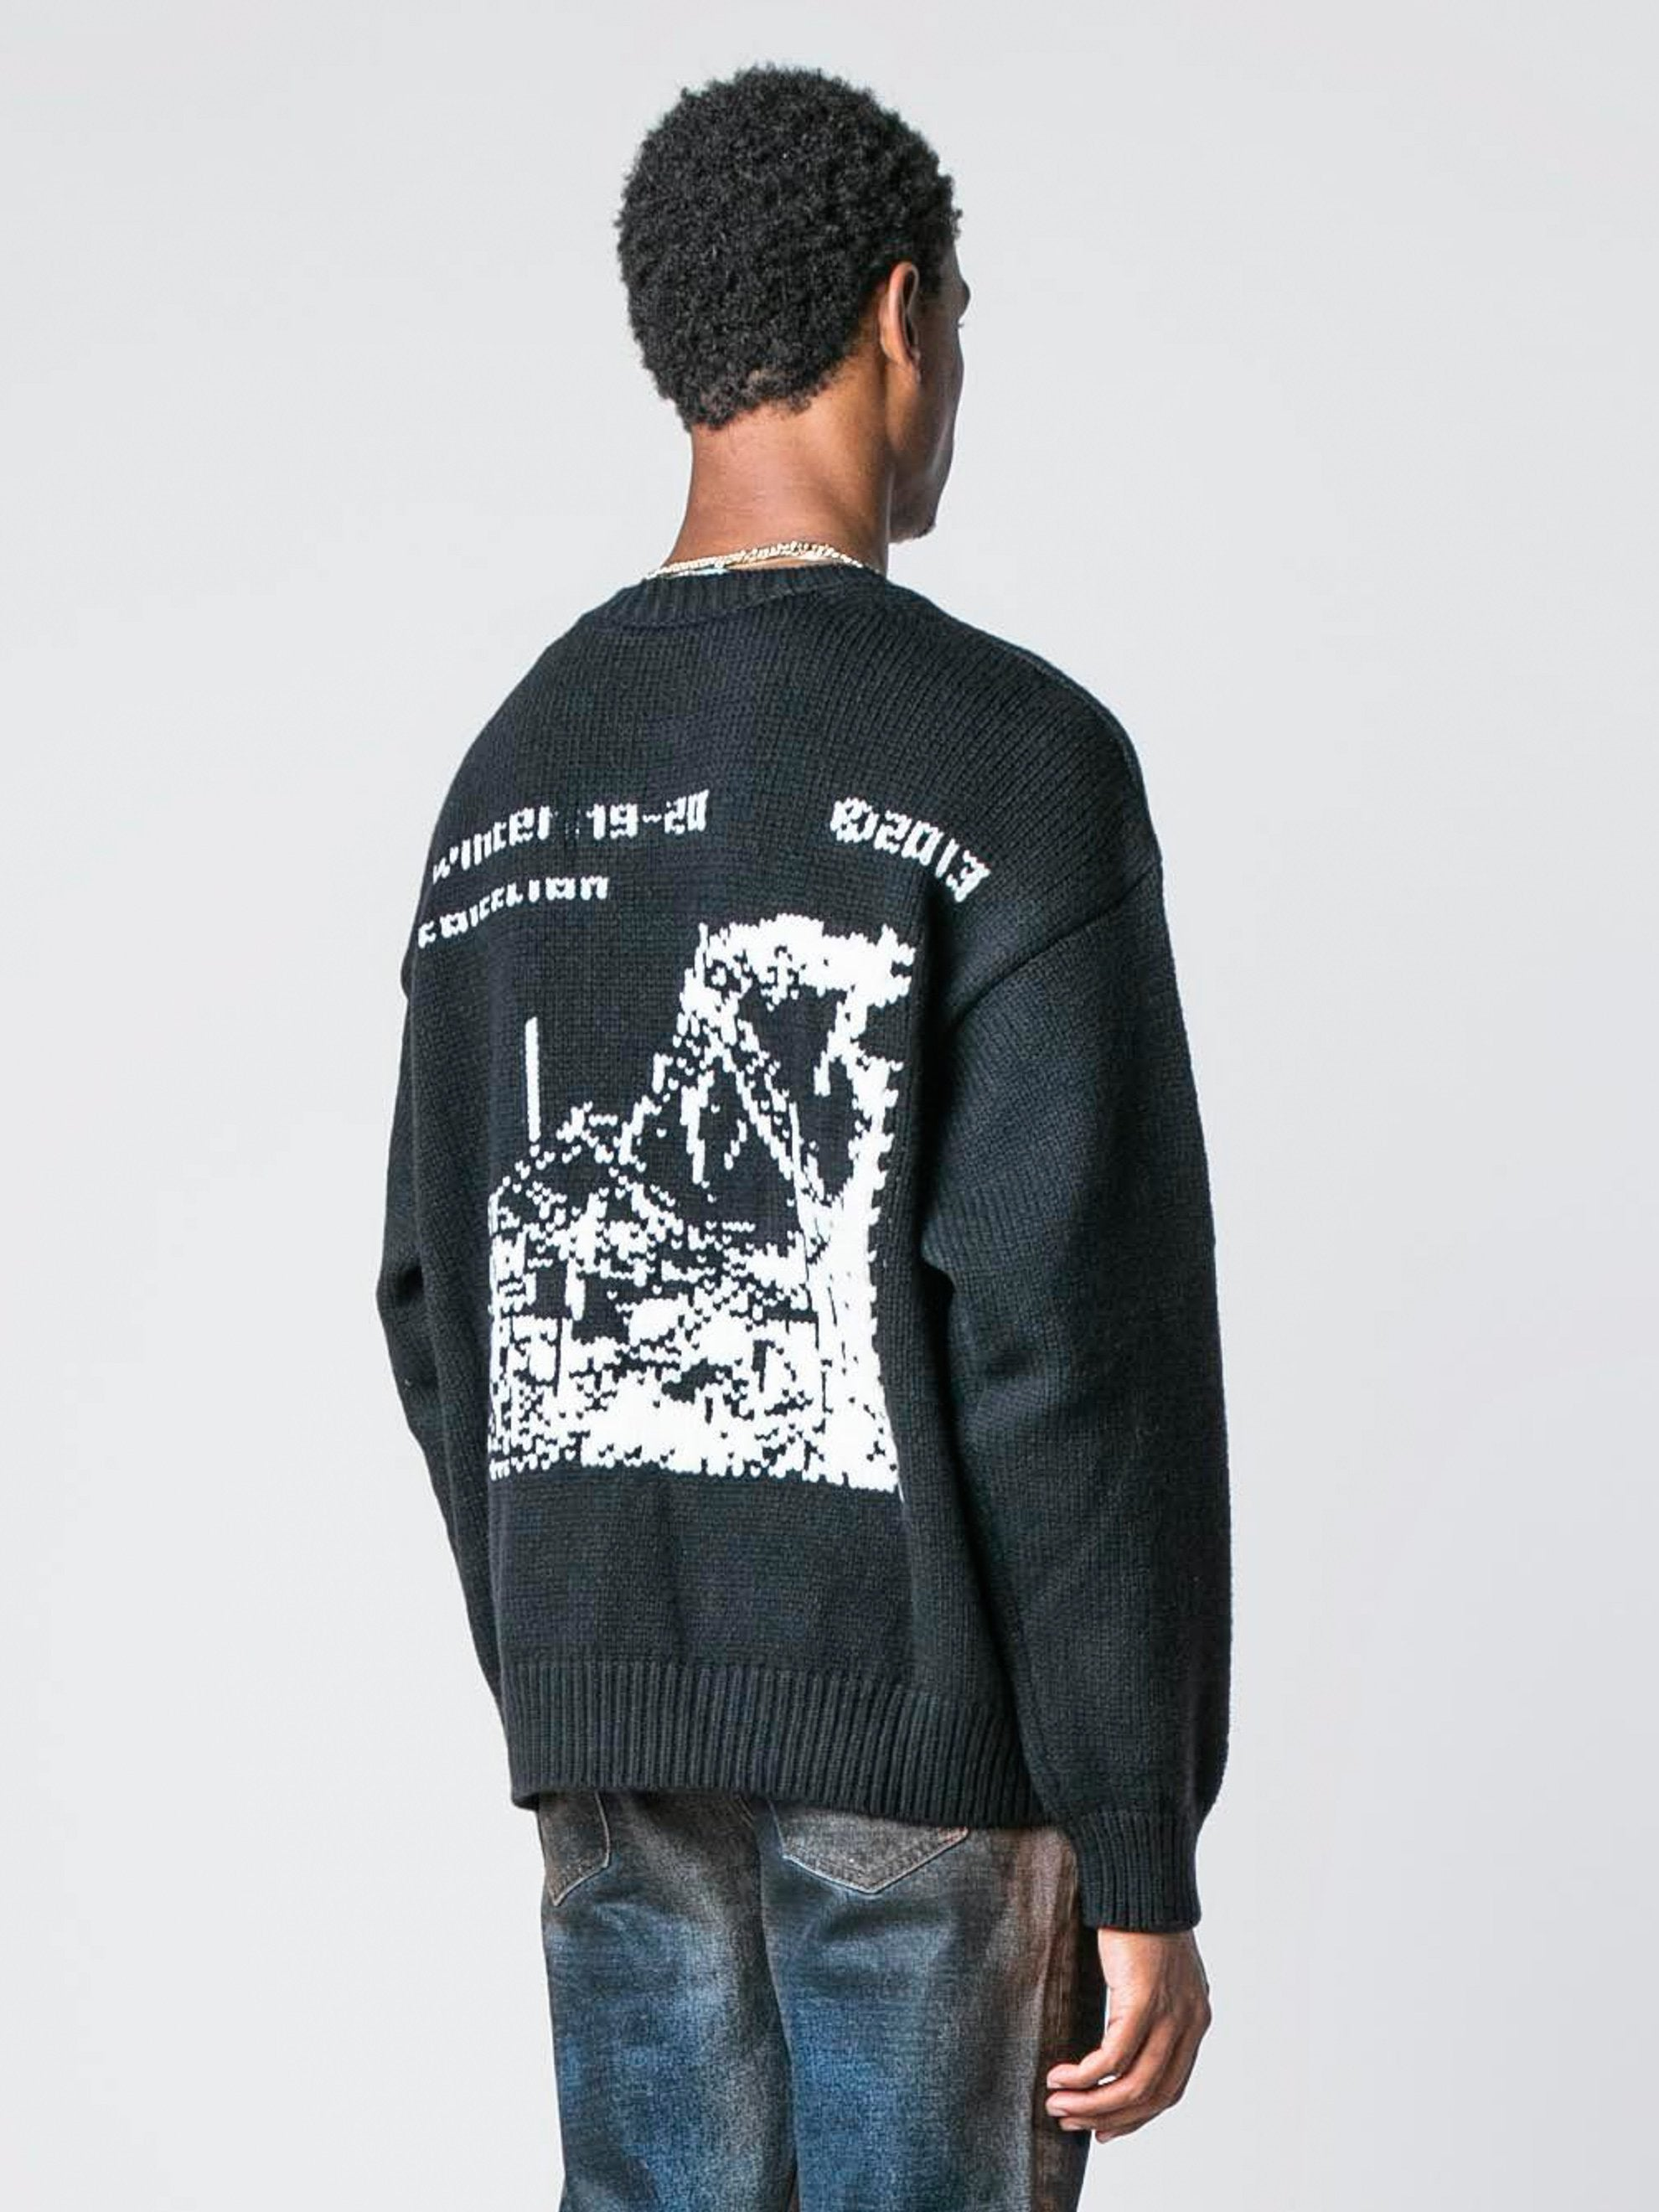 Black / White Ruined Factory Knit Crewneck 5